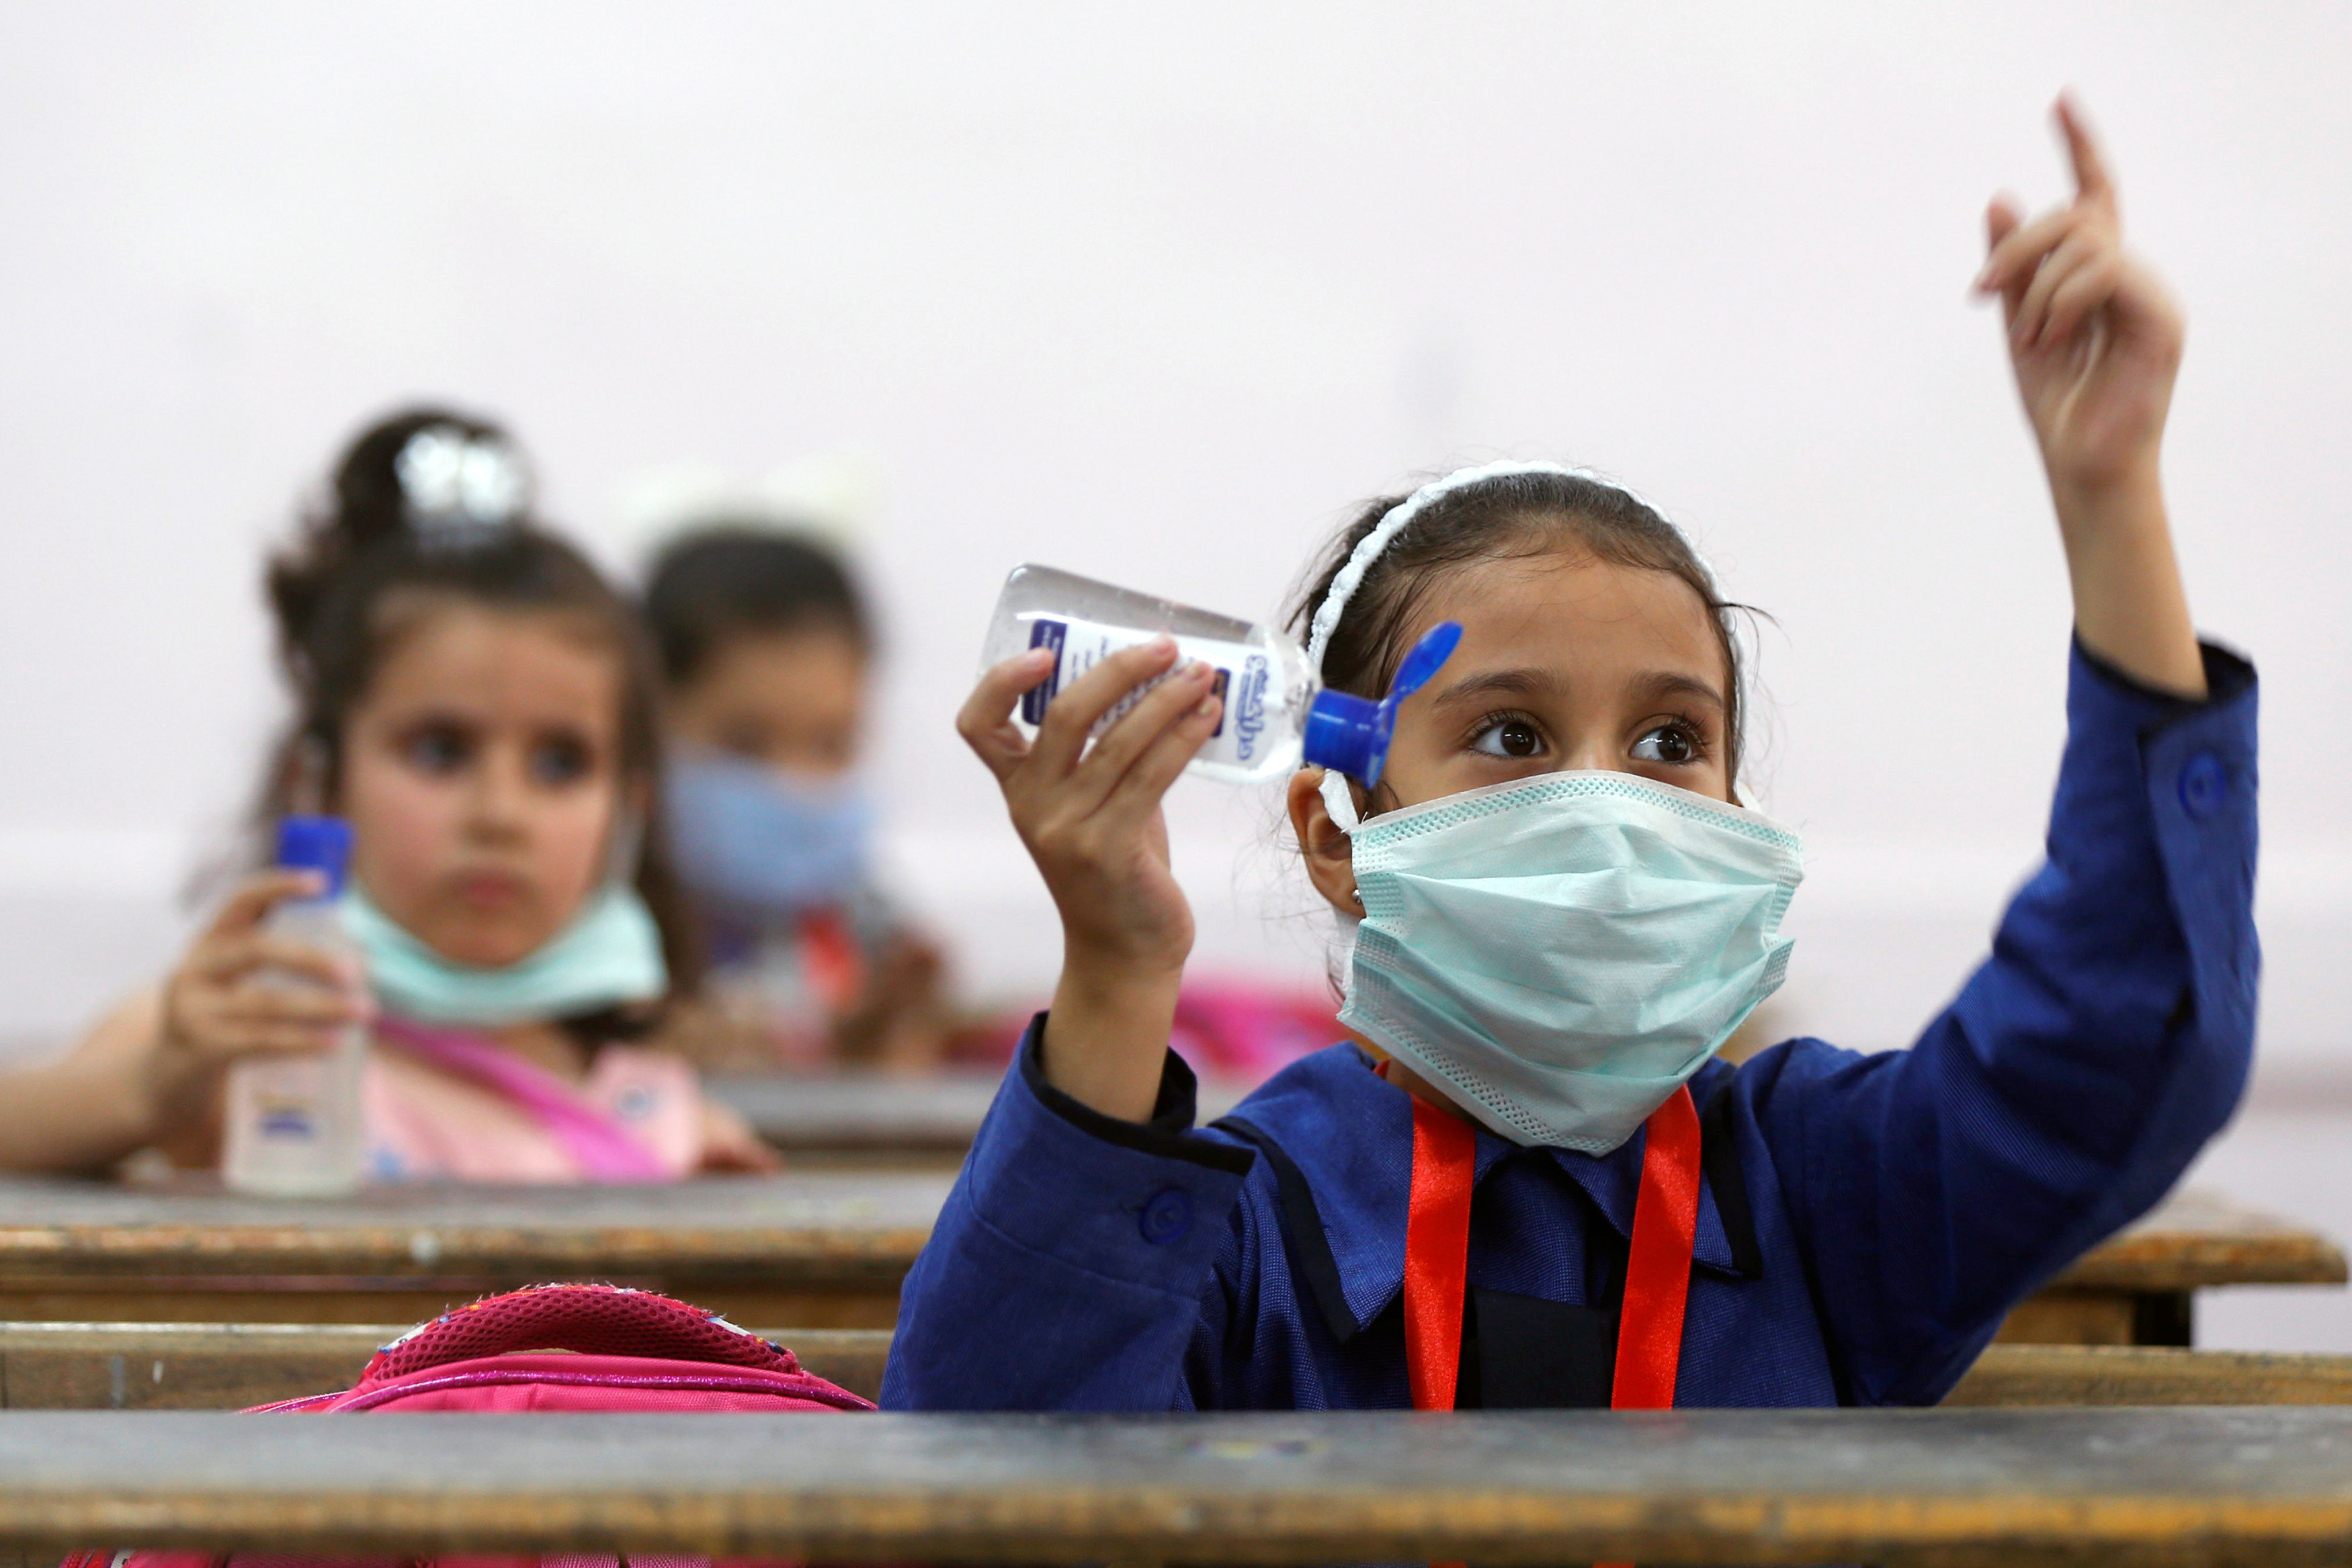 Refugee students learn how to sanitise their hands on the first day of the new school year at one of the UNRWA schools, amid fears of rising numbers of the coronavirus disease (COVID-19) cases in Amman, Jordan September 1, 2020